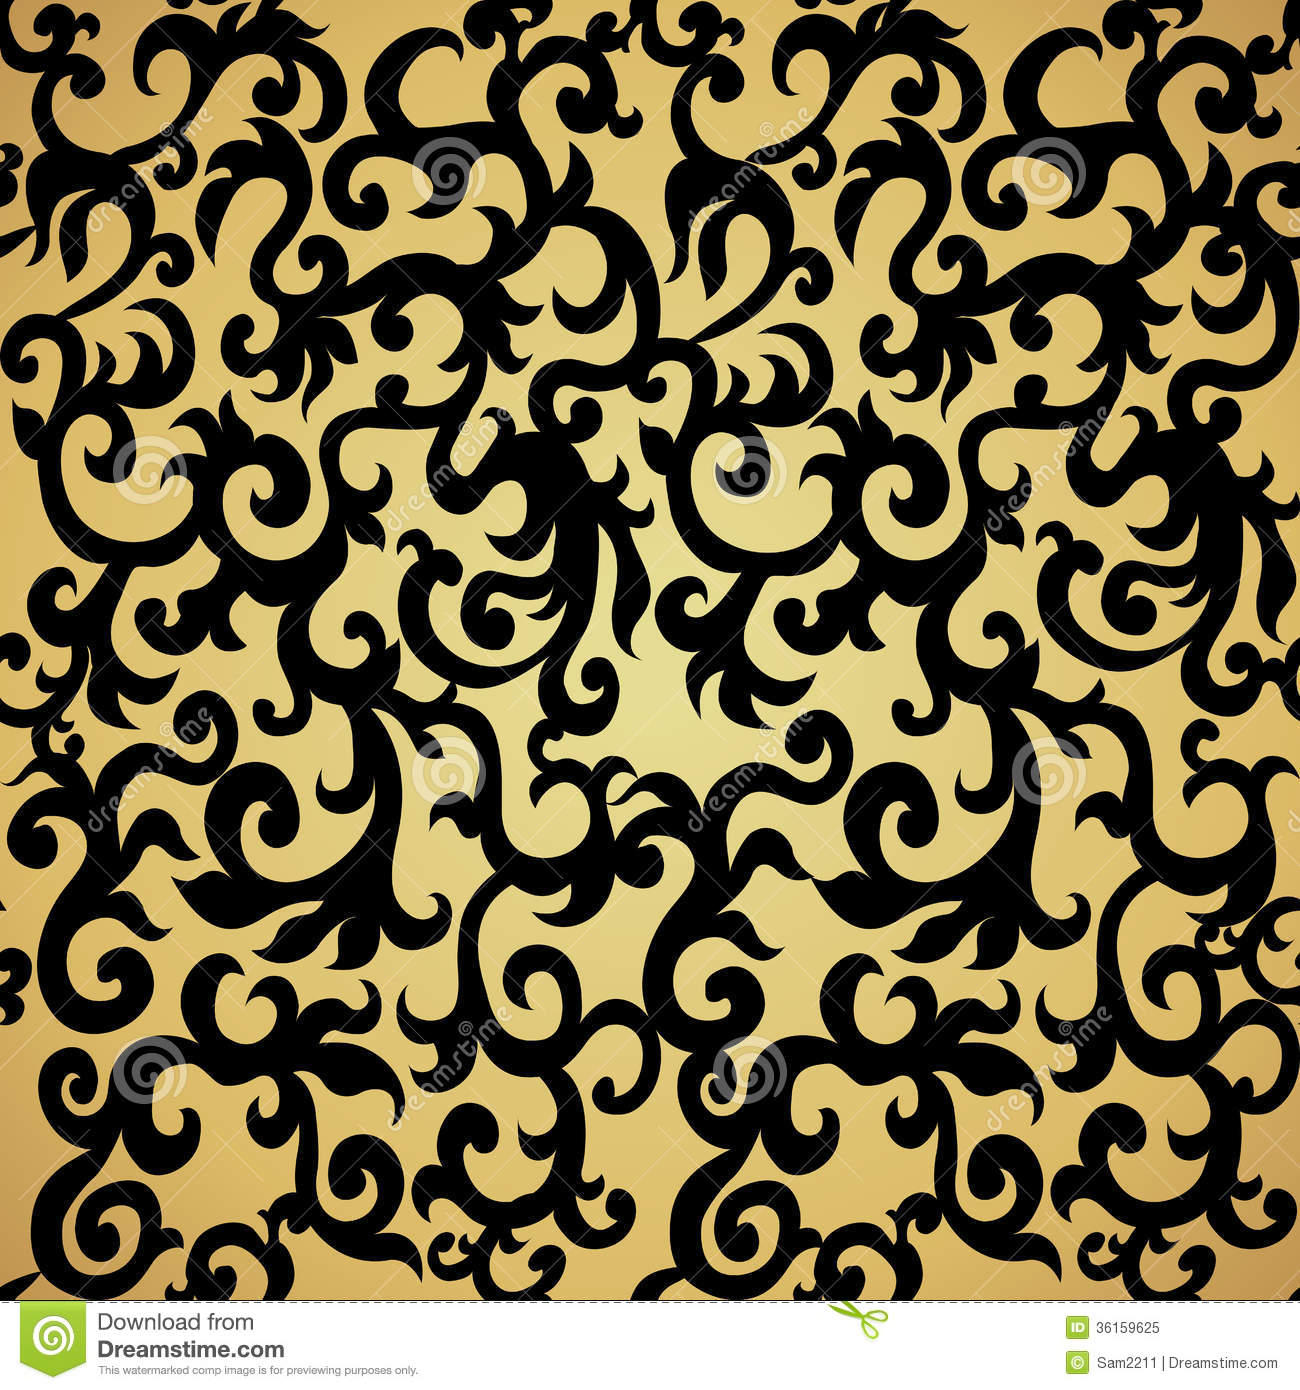 Broken Heart Quotes Wallpapers Free Download Download Black And Gold Pattern Wallpaper Gallery